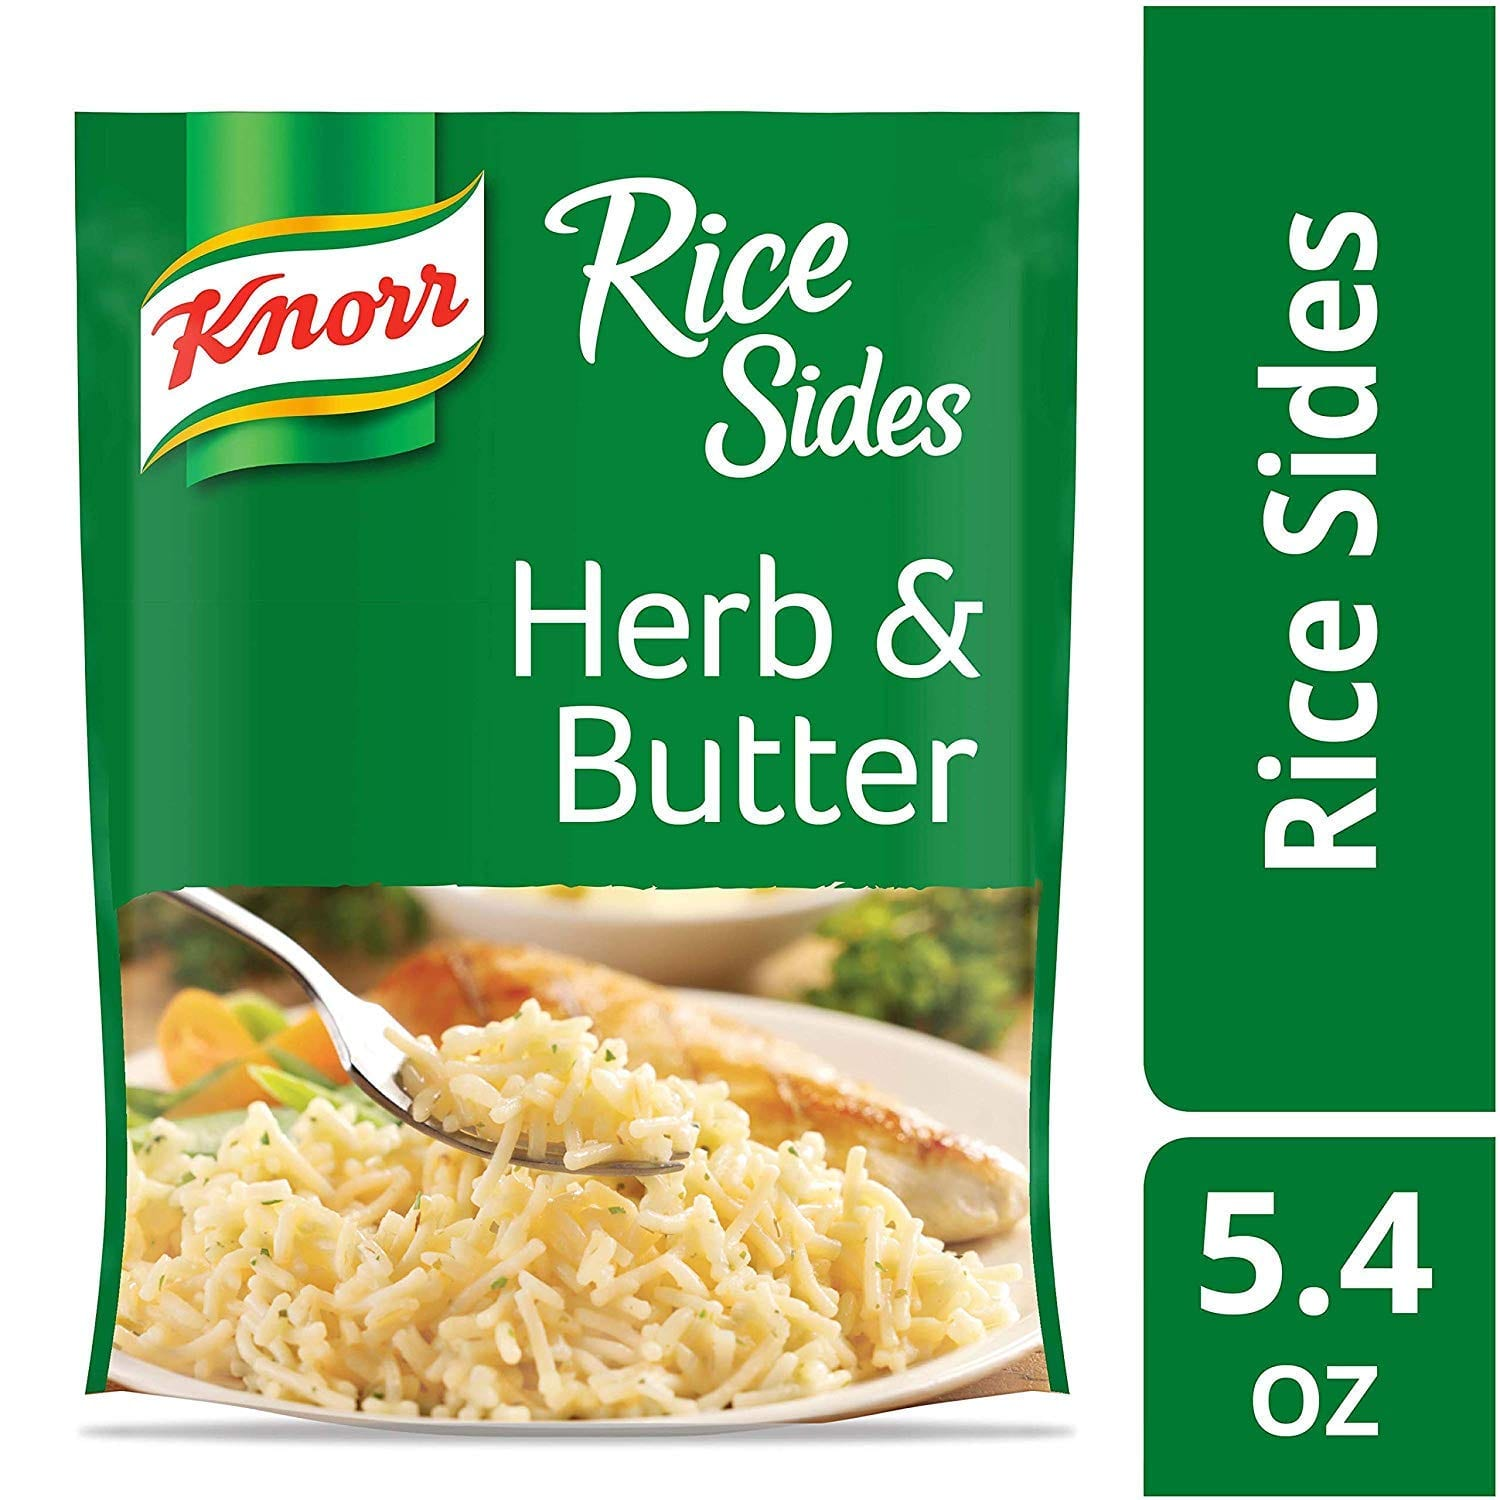 8-Pack Knorr Rice Side Dish (Herb & Butter) $7.15 w/ S&S + Free S&H w/ Prime or $25+